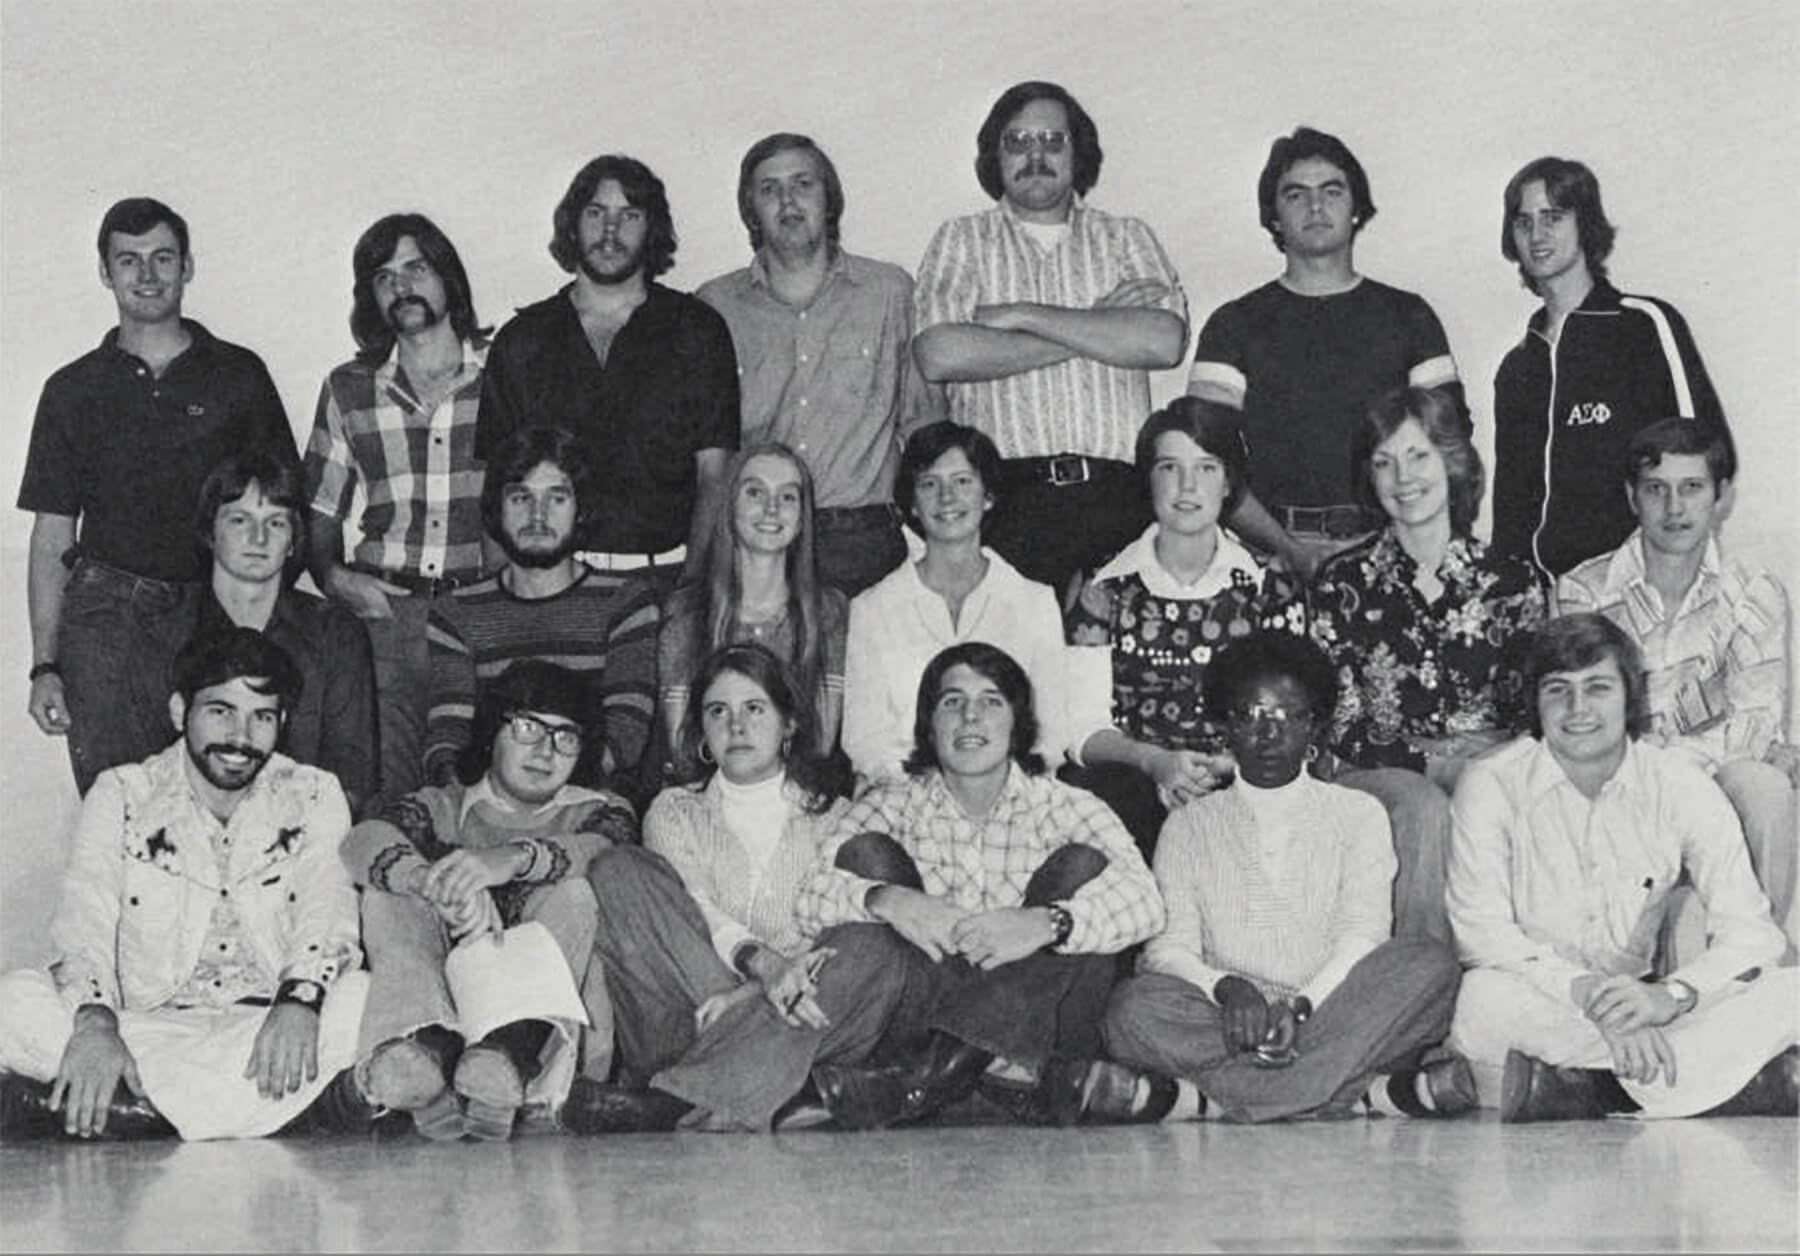 The original Student Concert Committee in 1976